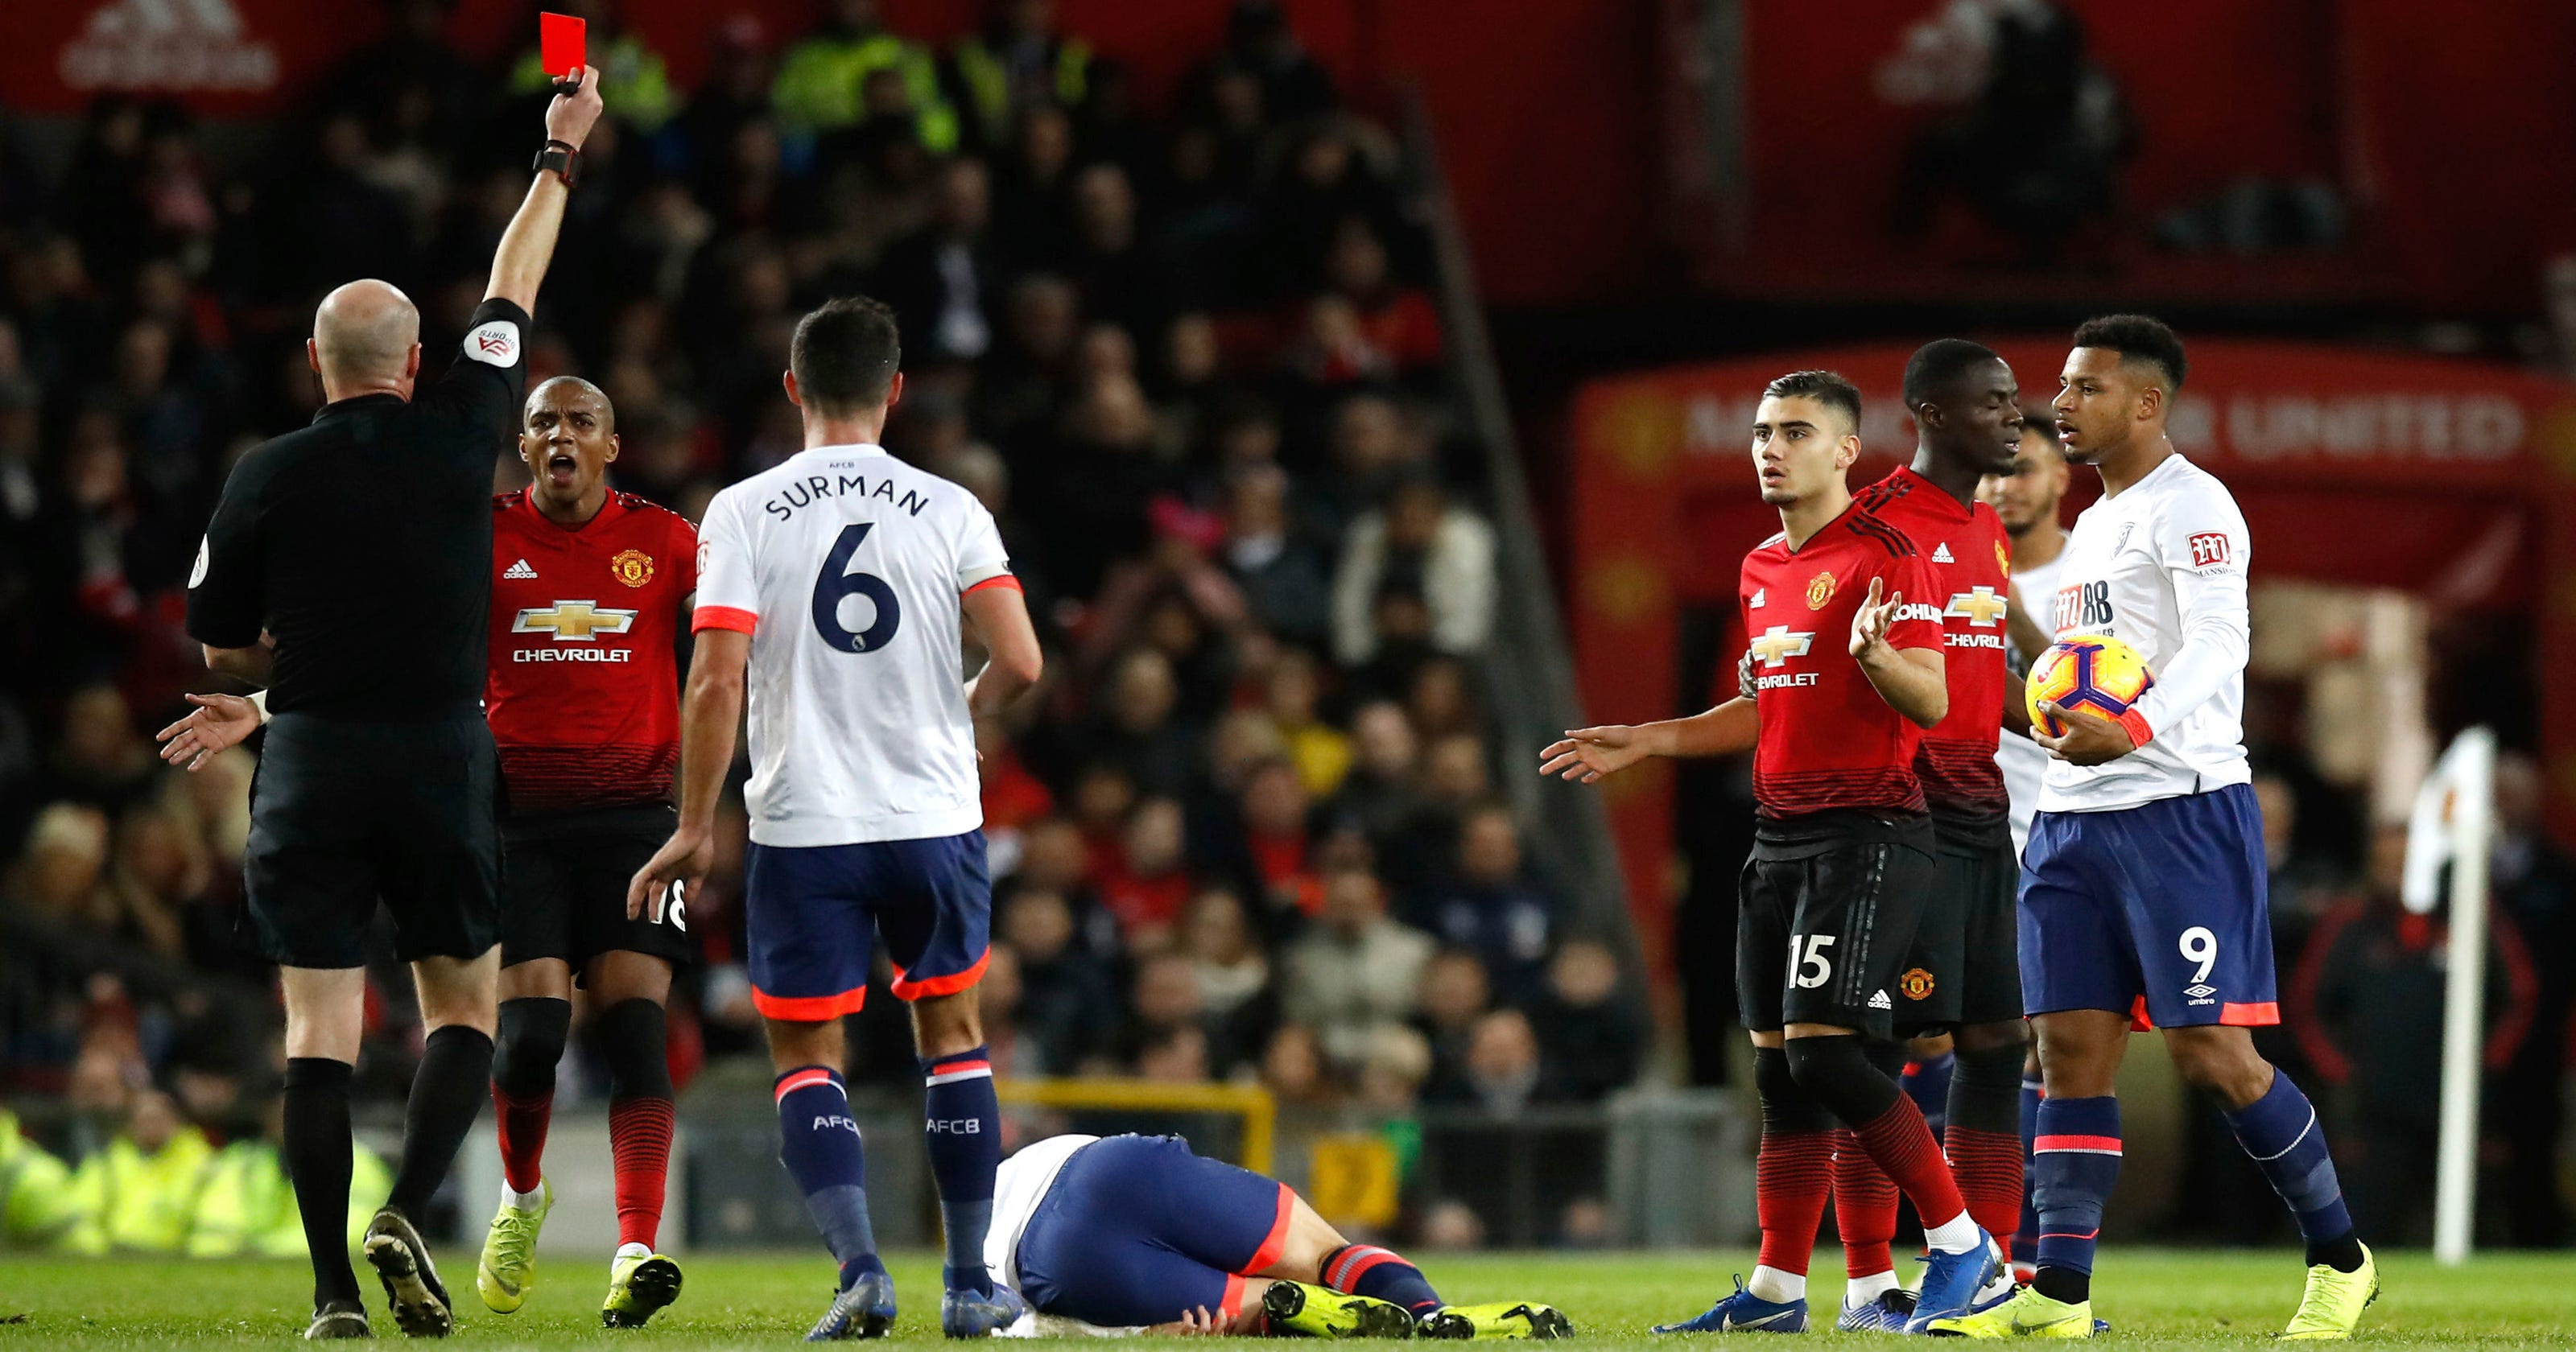 96a2851b0dc Pogba leads resurgent Man United to 4-1 win over Bournemouth